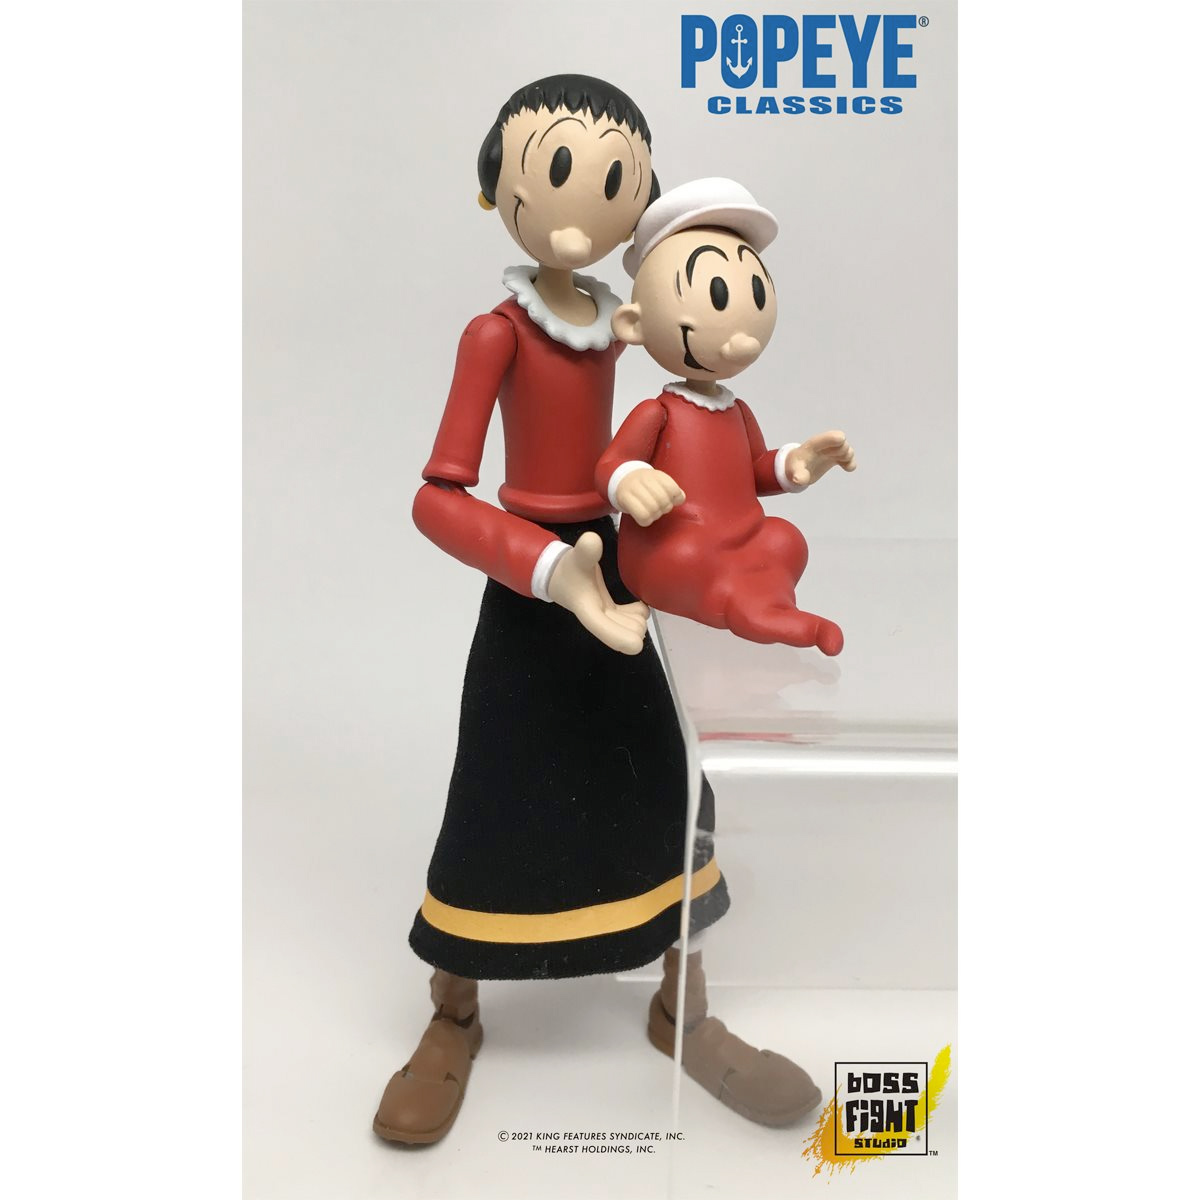 Popeye Classics 1:12 Scale Wave 1 Action Figures